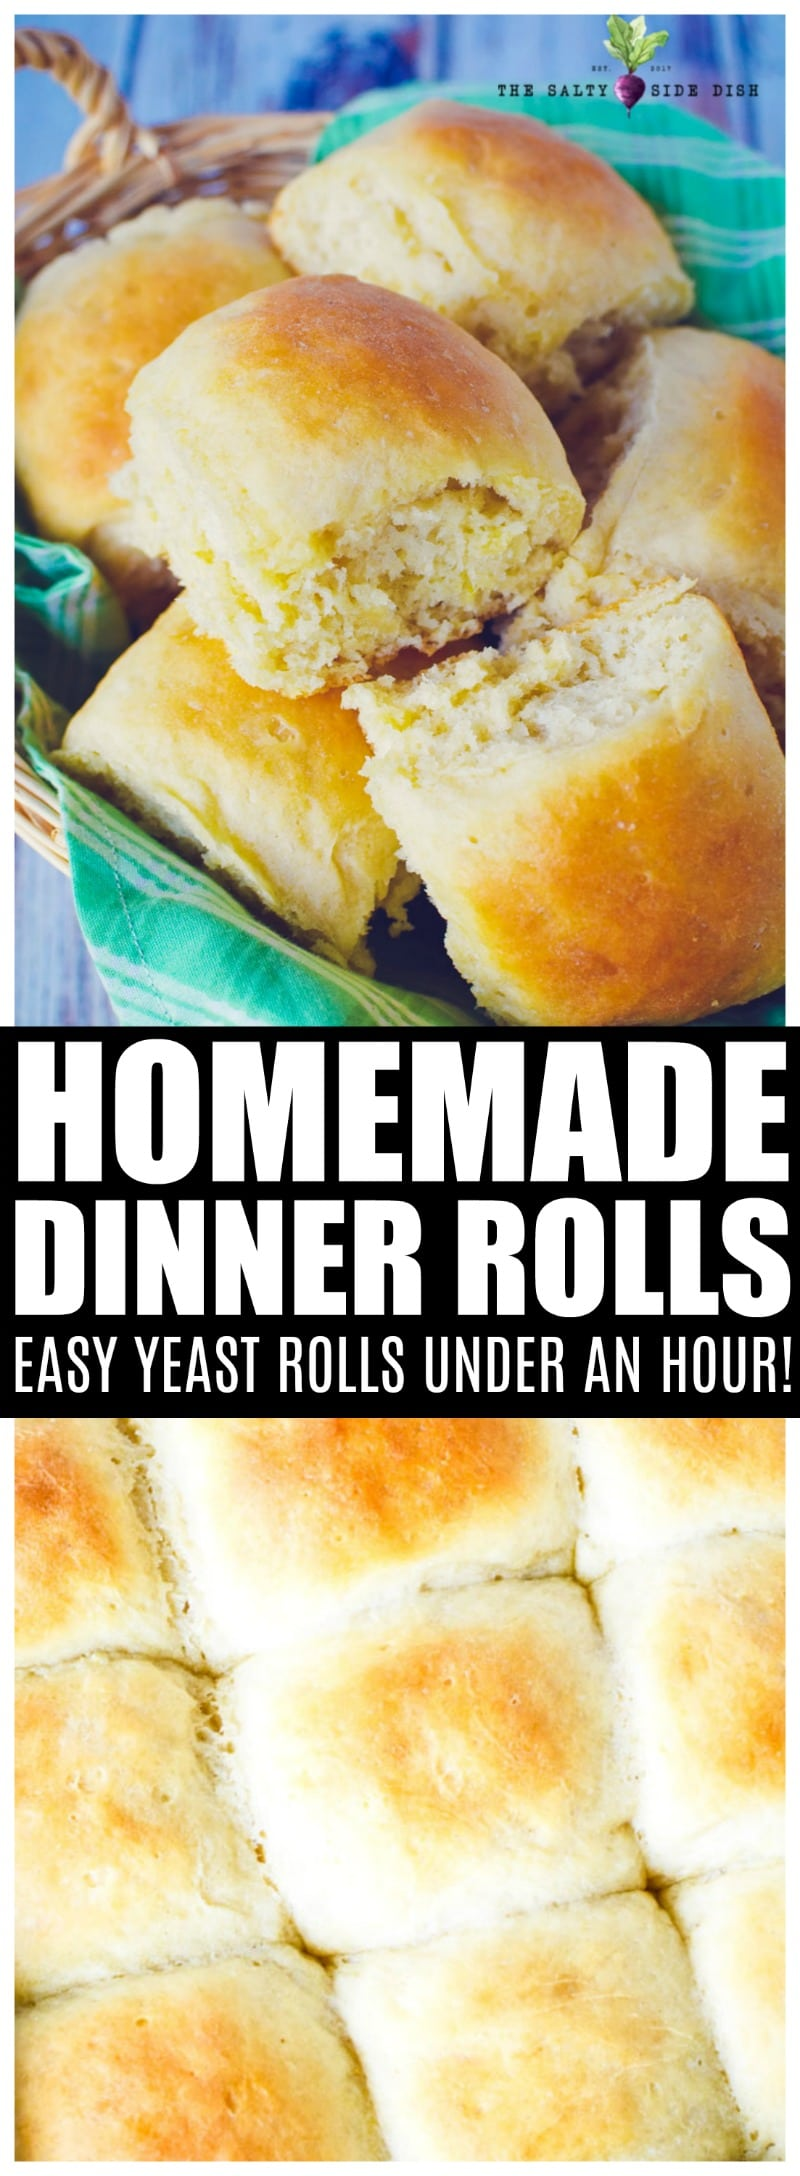 Easy Dinner Rolls Recipe | Classic Dinner rolls | Soft no knead homemade yeast rolls that are simply DIVINE, fast, and easy! #sidedish #bread #rolls #homemade #yeast #classic #thanksgiving #holiday #sidedish